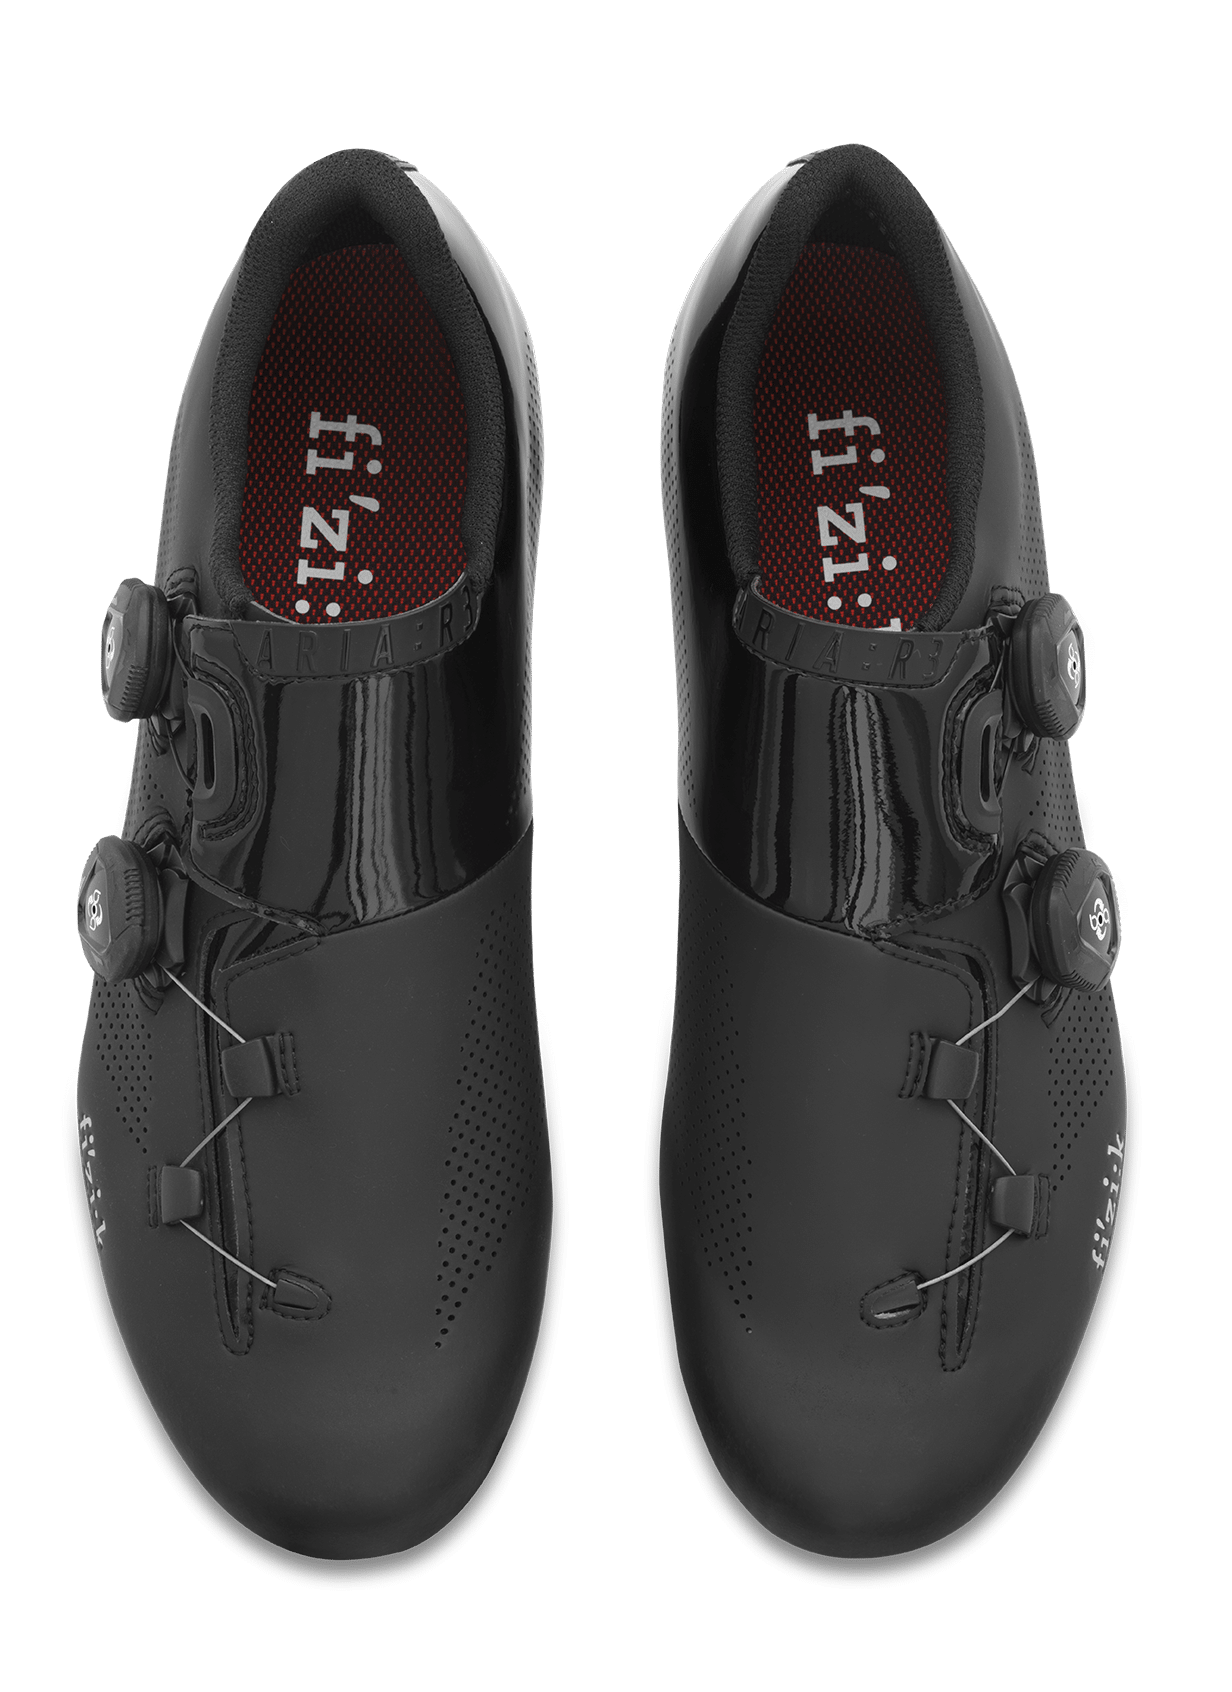 15 Best Cycling Shoes and Pedals of 2018 - Buying Guide and Reviews 33